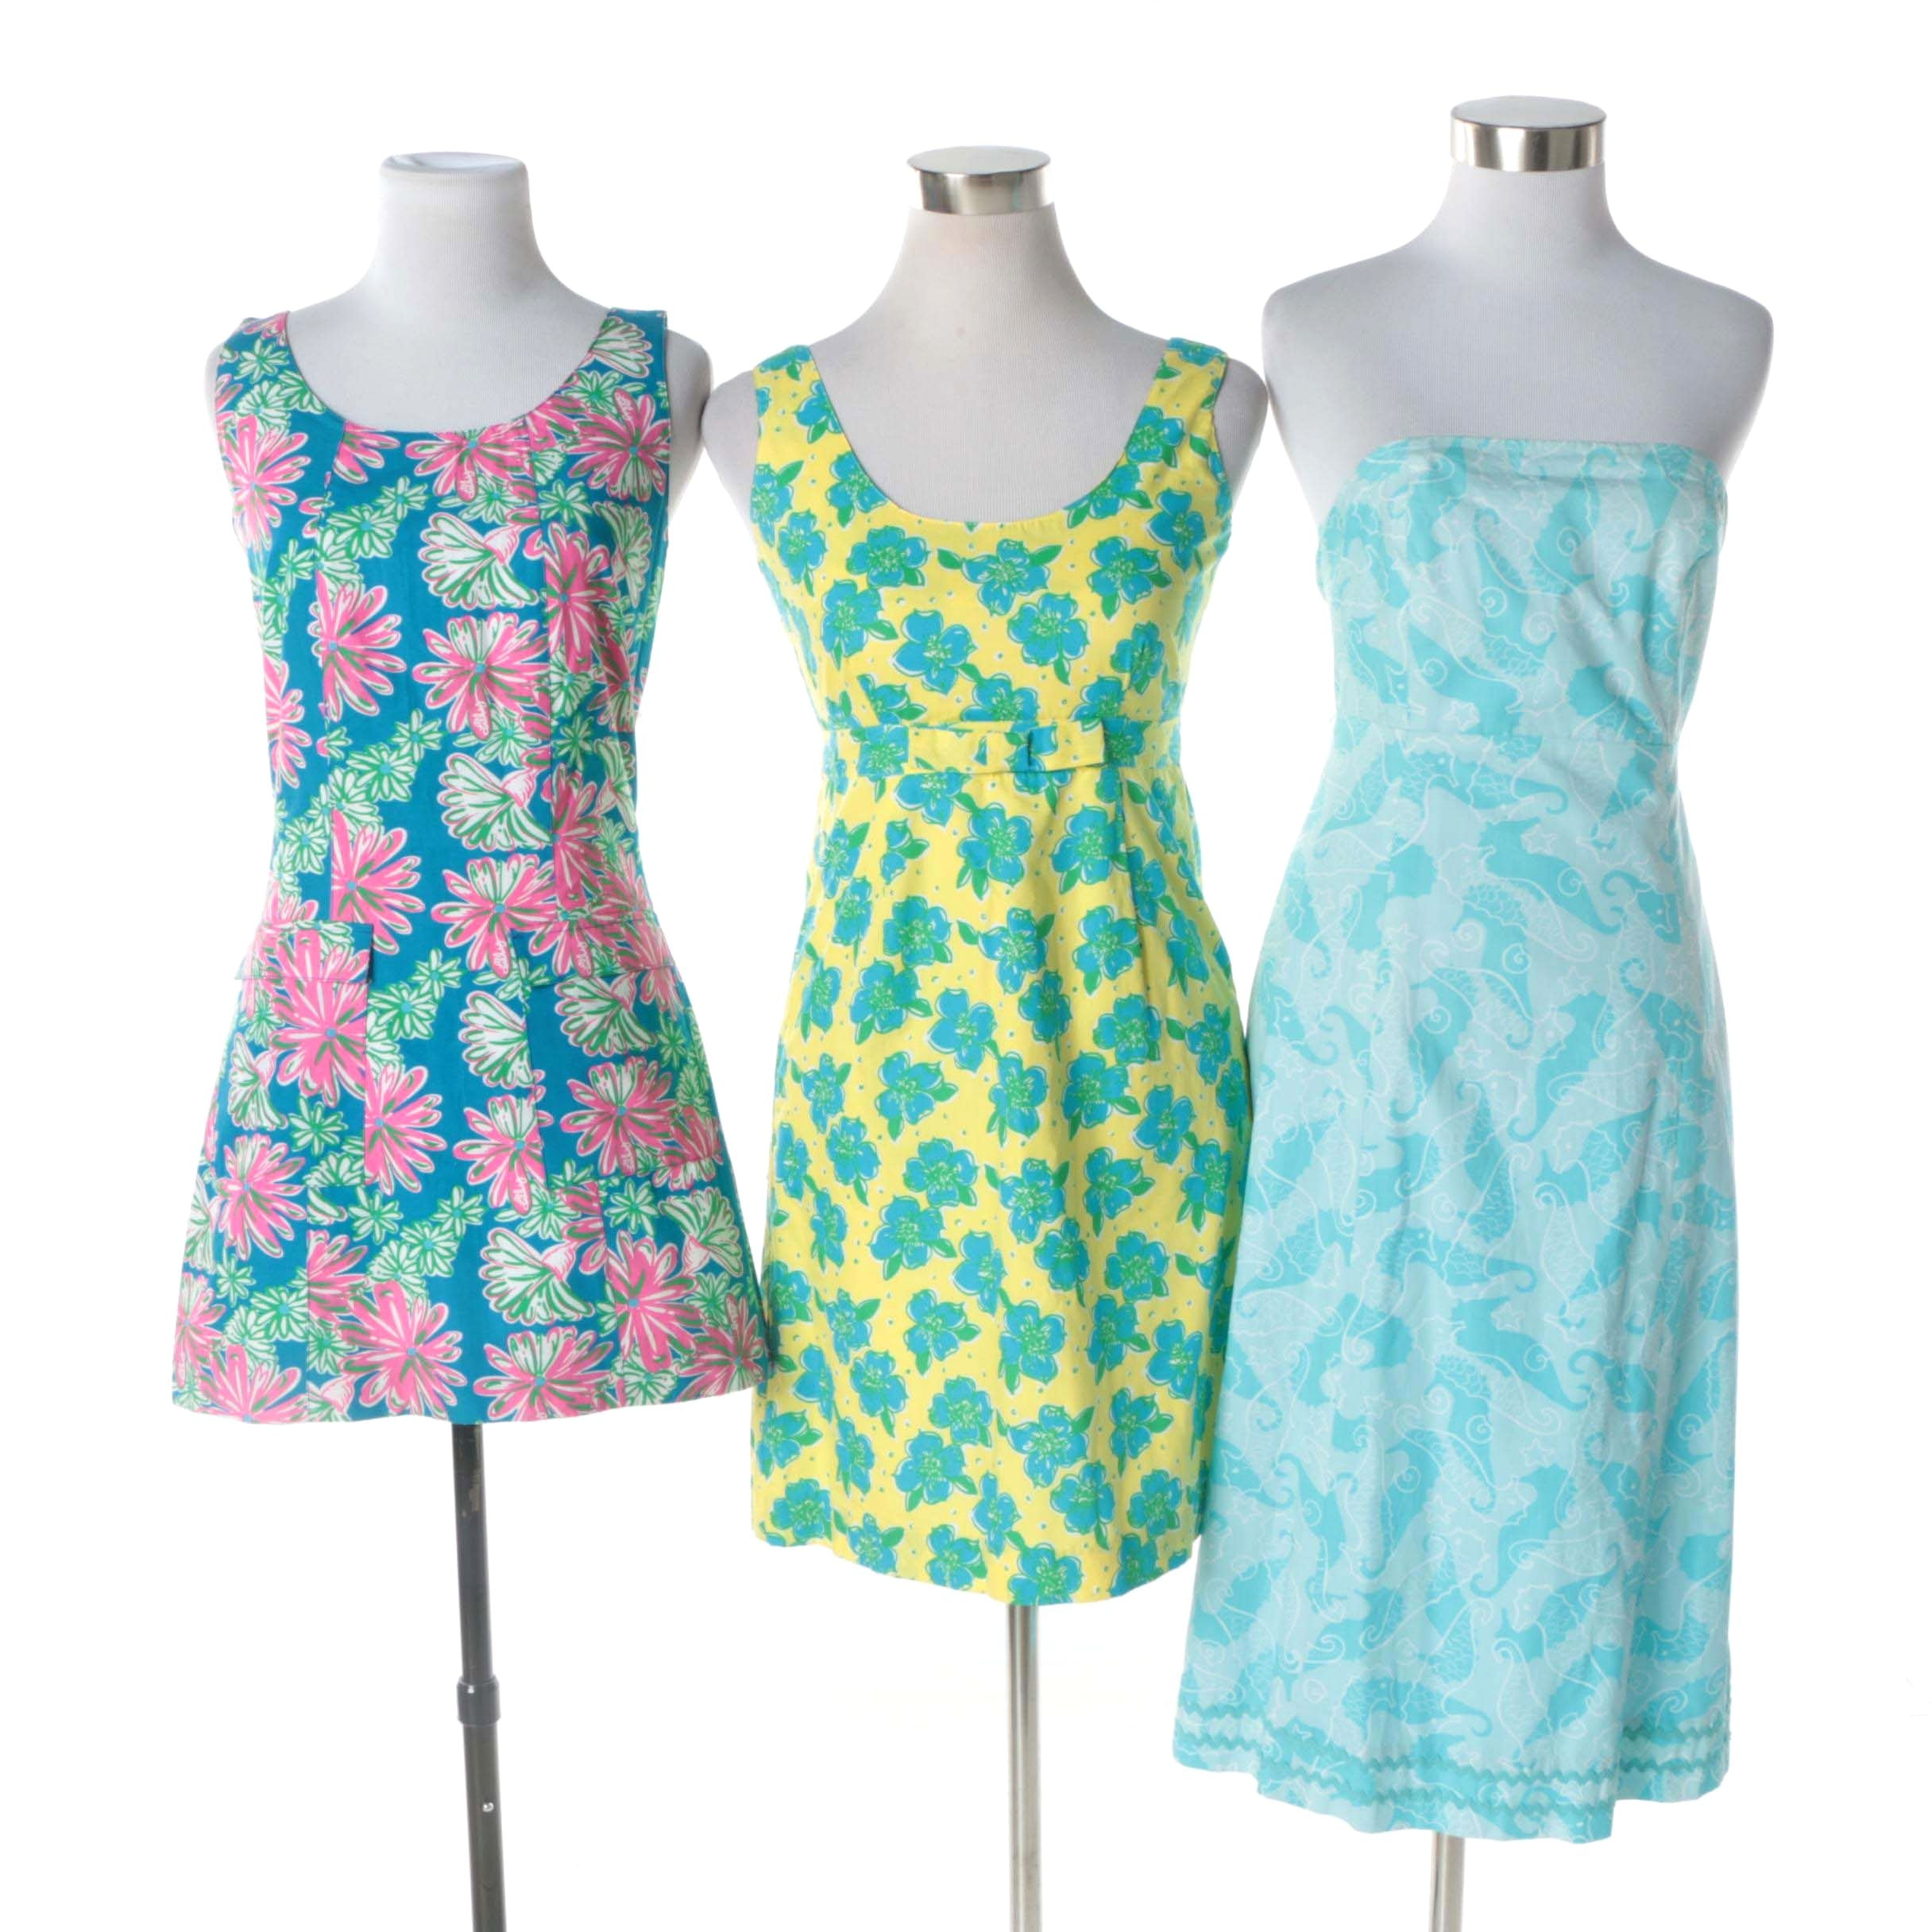 Women's Lilly Pulitzer Cotton Casual Dresses